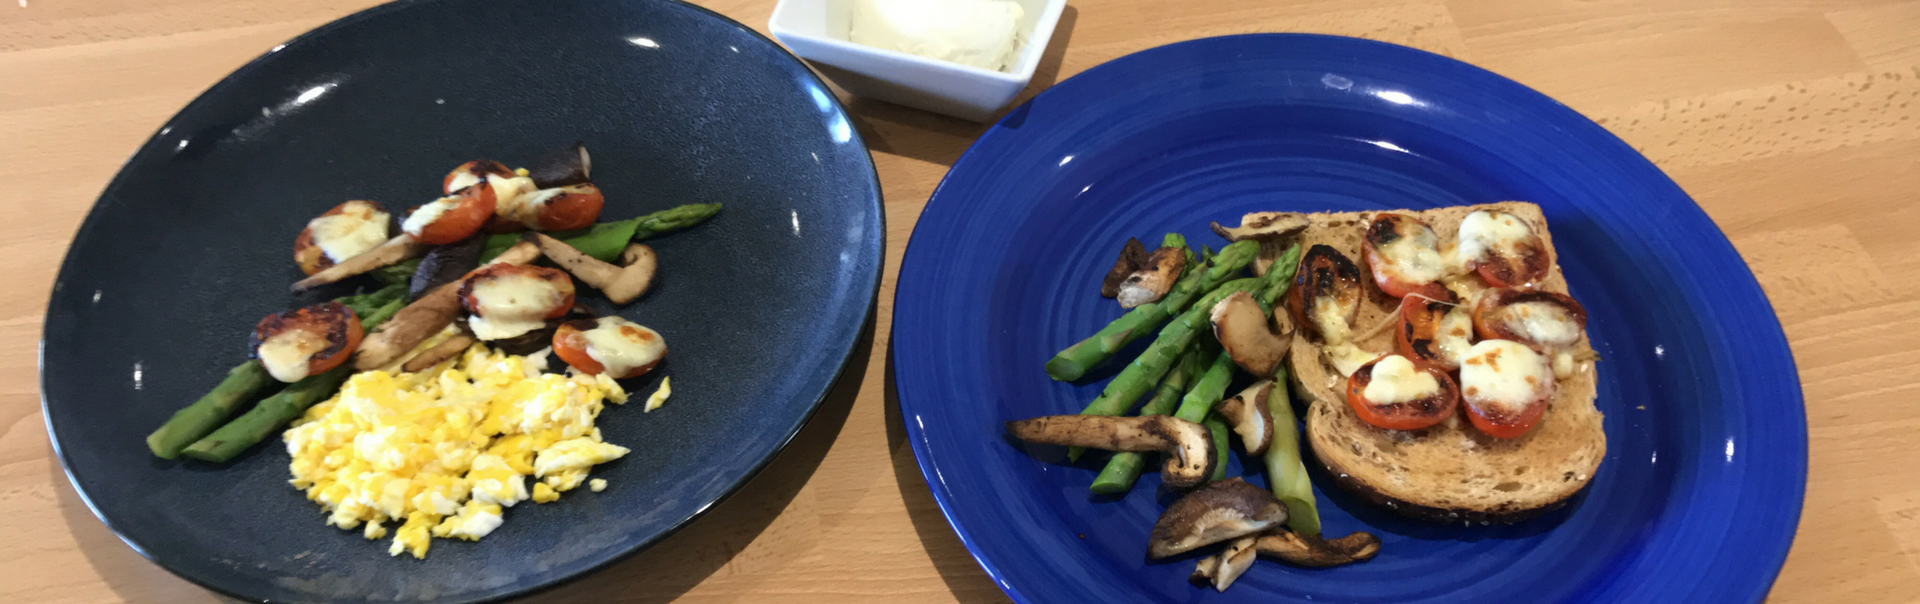 Wild Asparagus and Cheese on Toast-